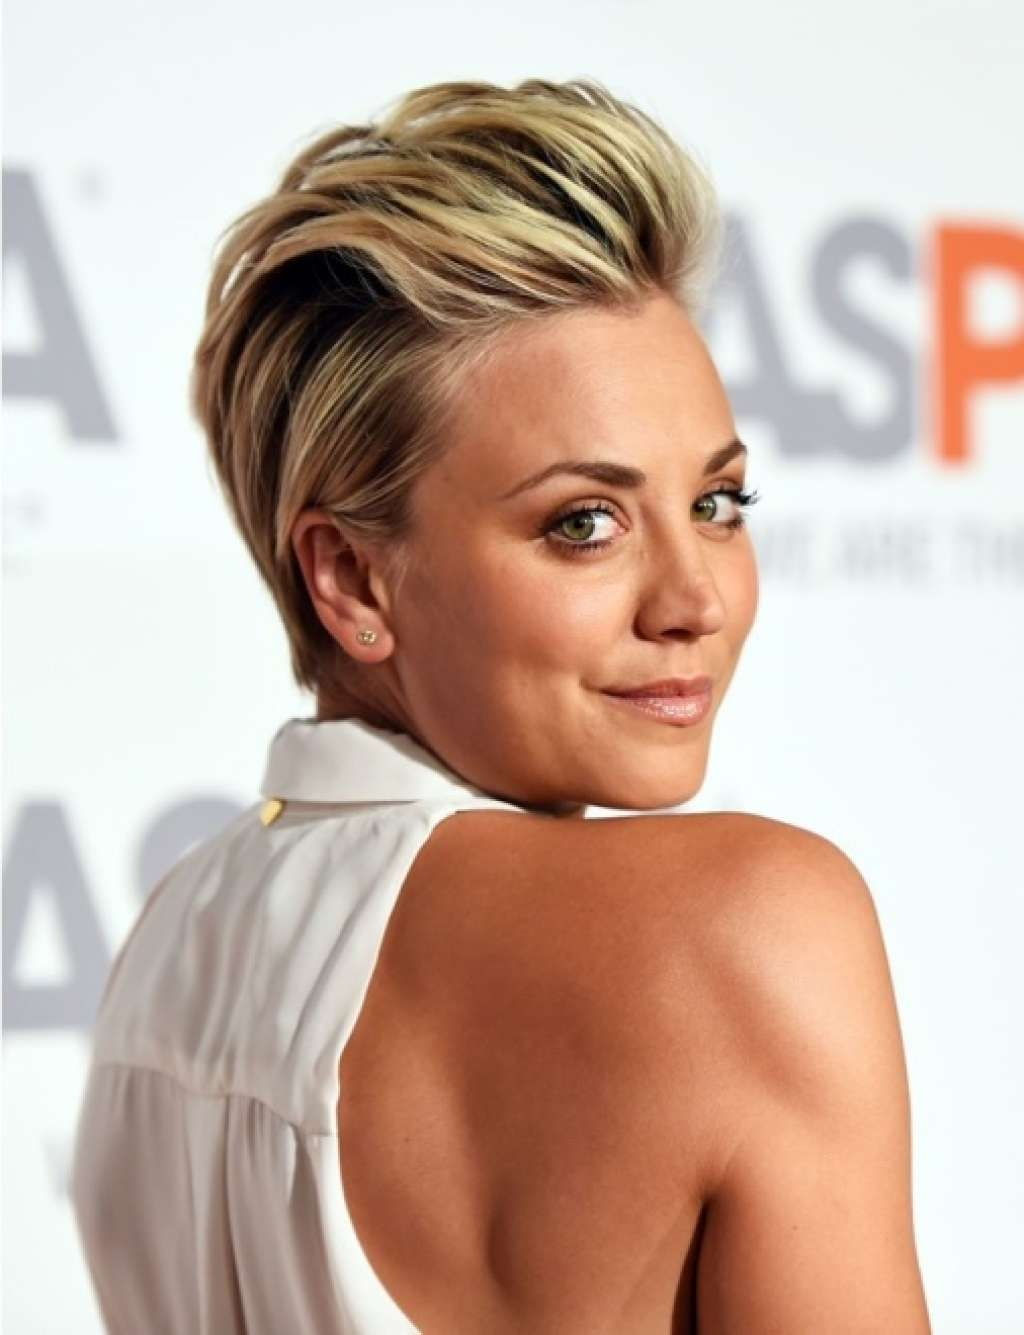 trendy short haircut with slicked back hair :: one1lady